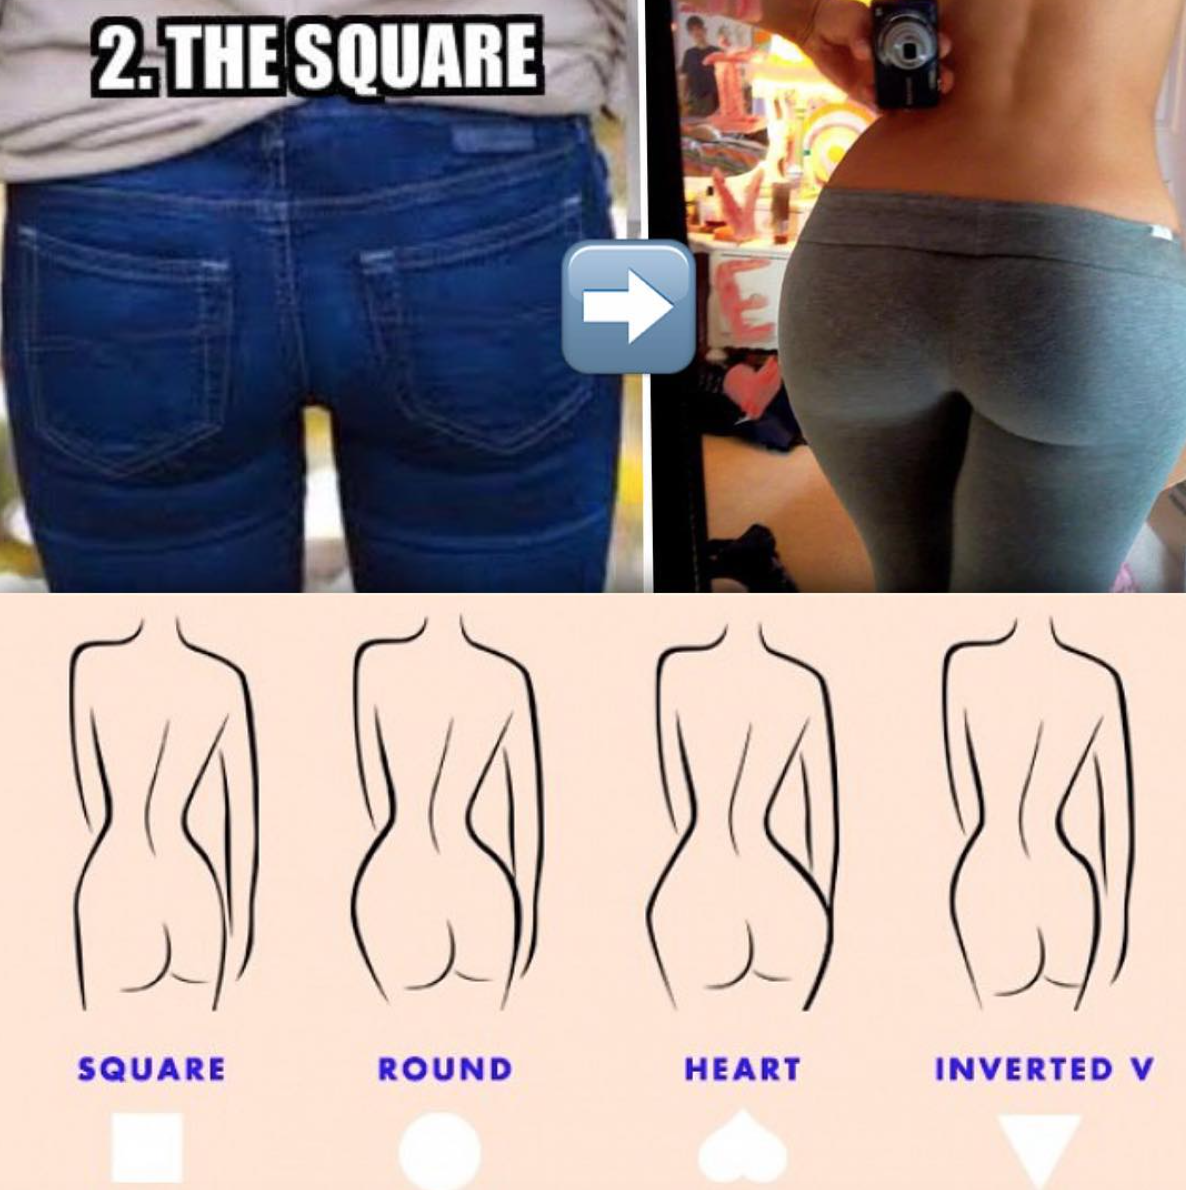 Does A Woman's Buttocks Get Bigger After Sex